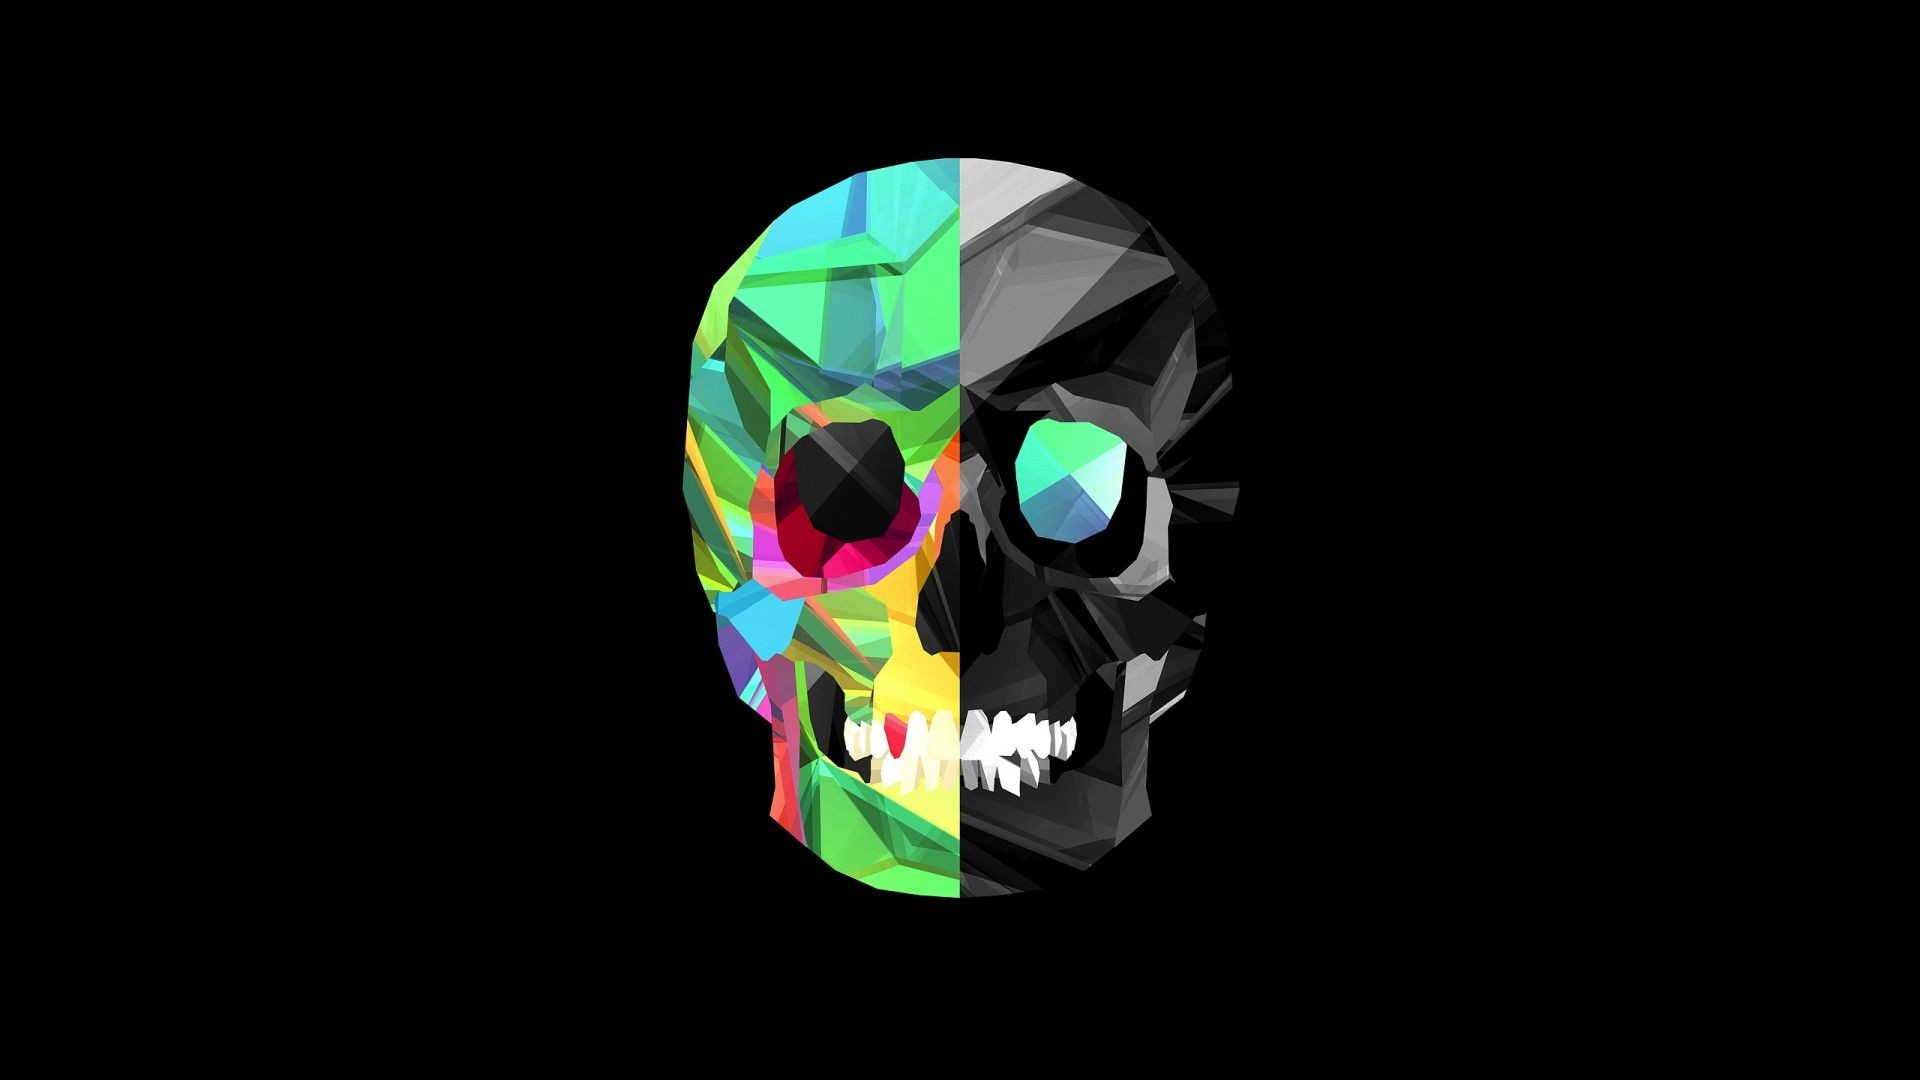 Download Awesome Skull Wallpaper 4602 px High Resolution .